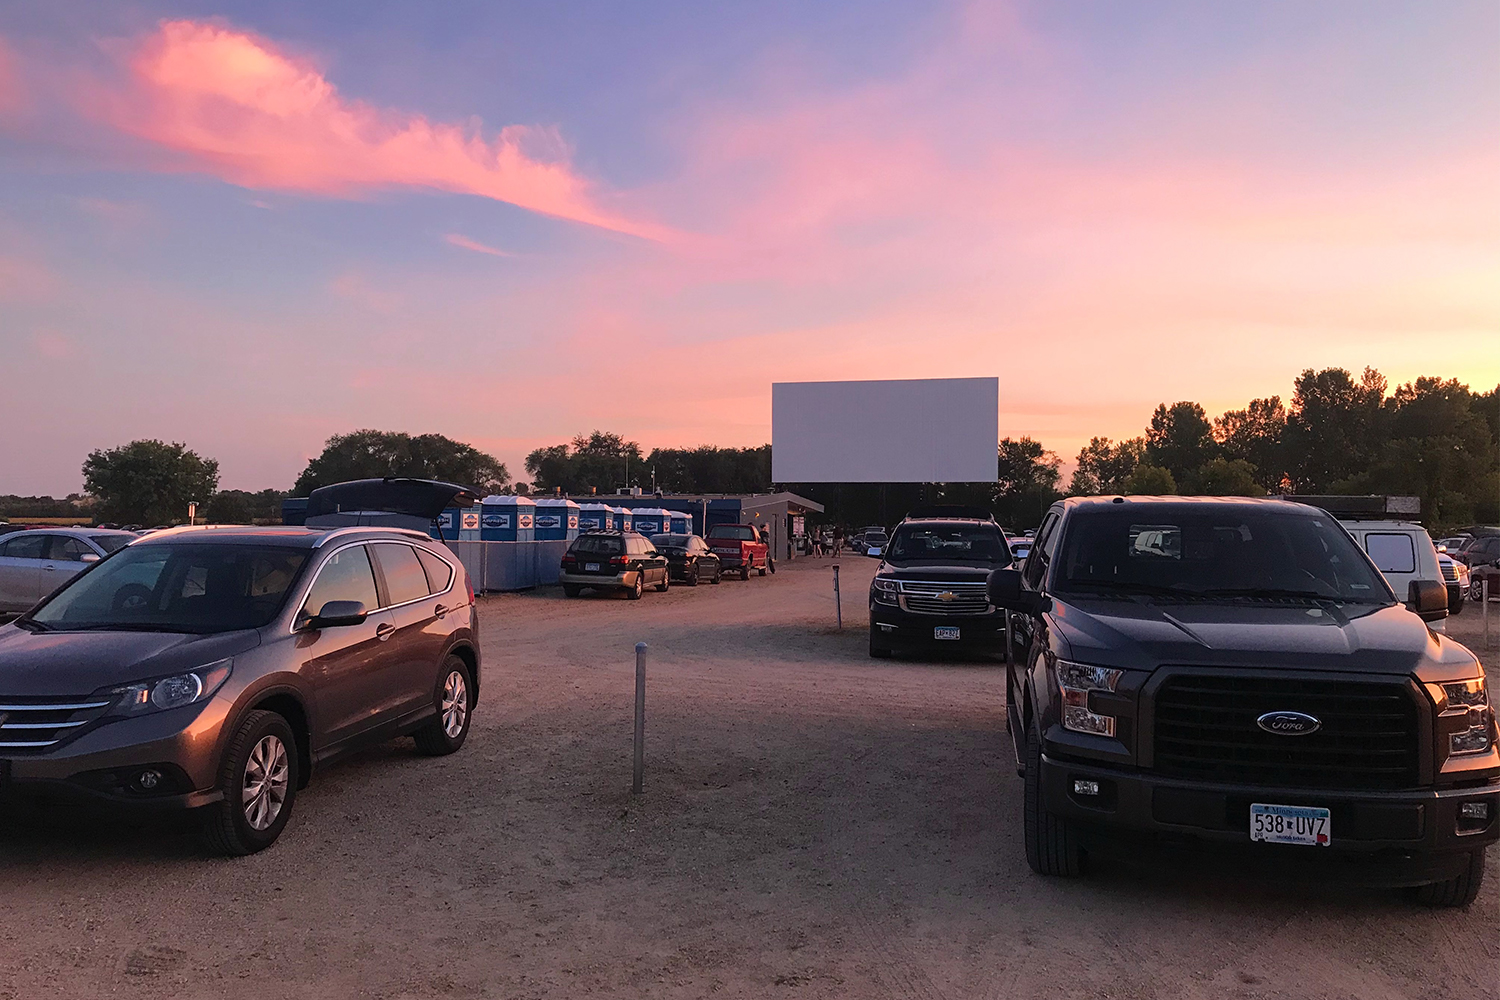 Vali-Hi Drive-In Movie Theater in Lake Elmo, Minnesota